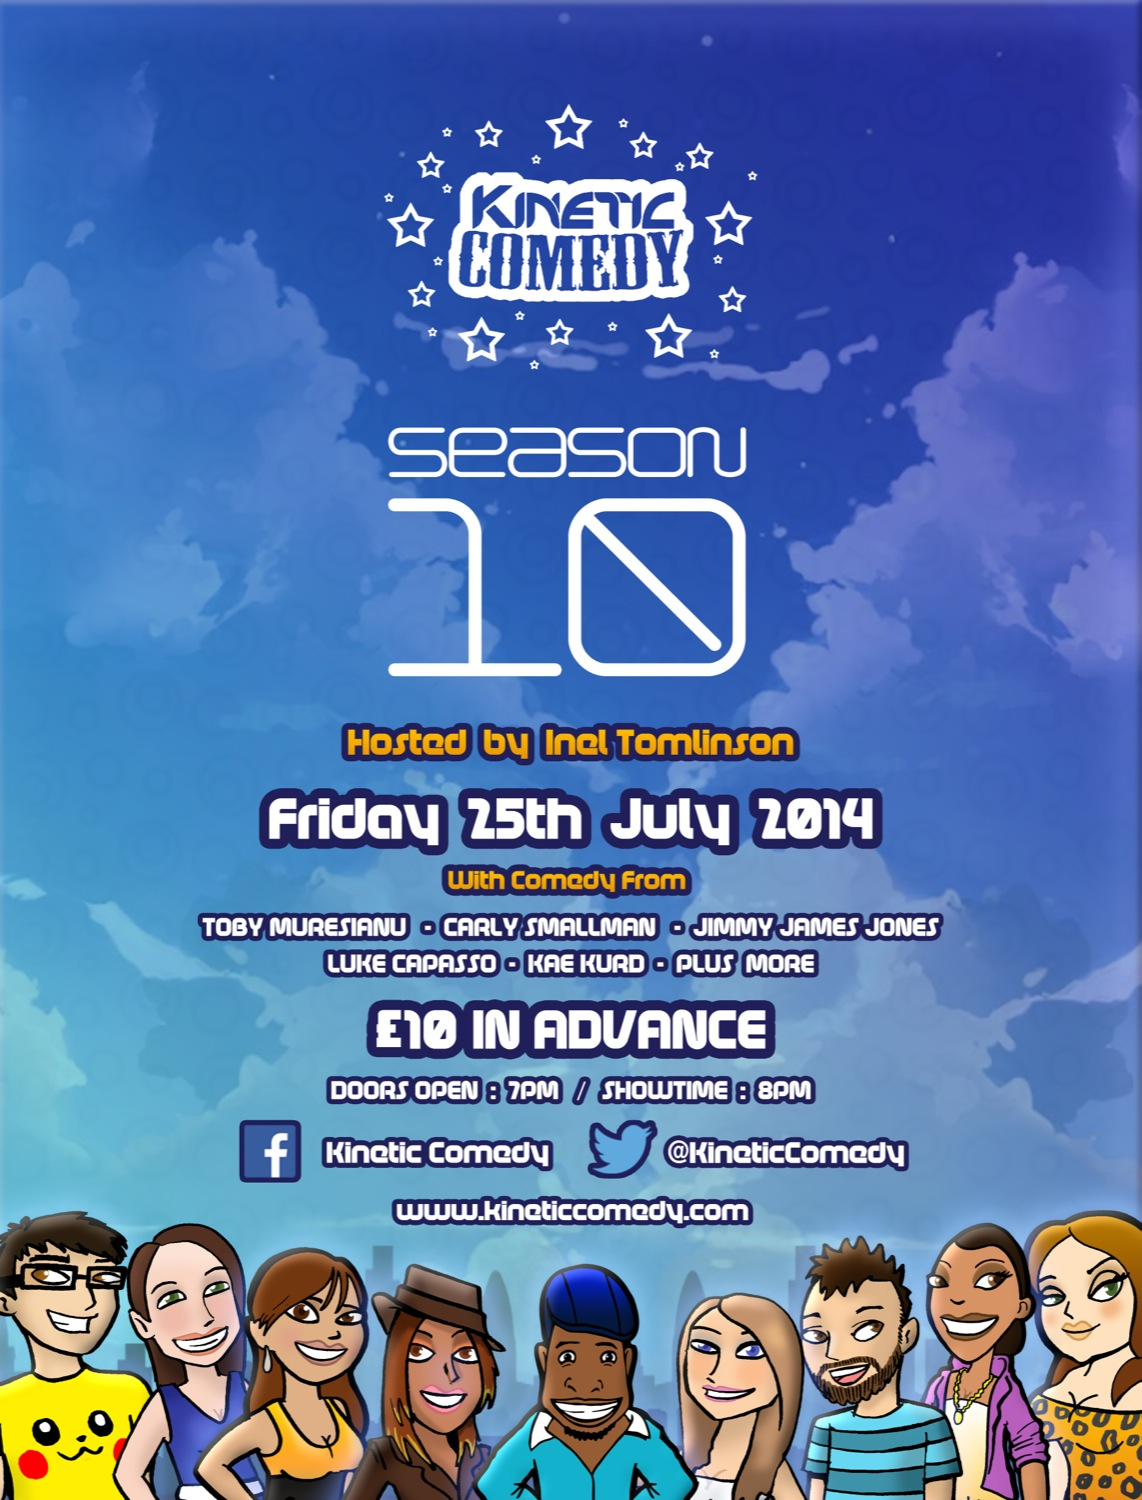 Kinetic Comedy 10.1 – Friday 25th July 2014